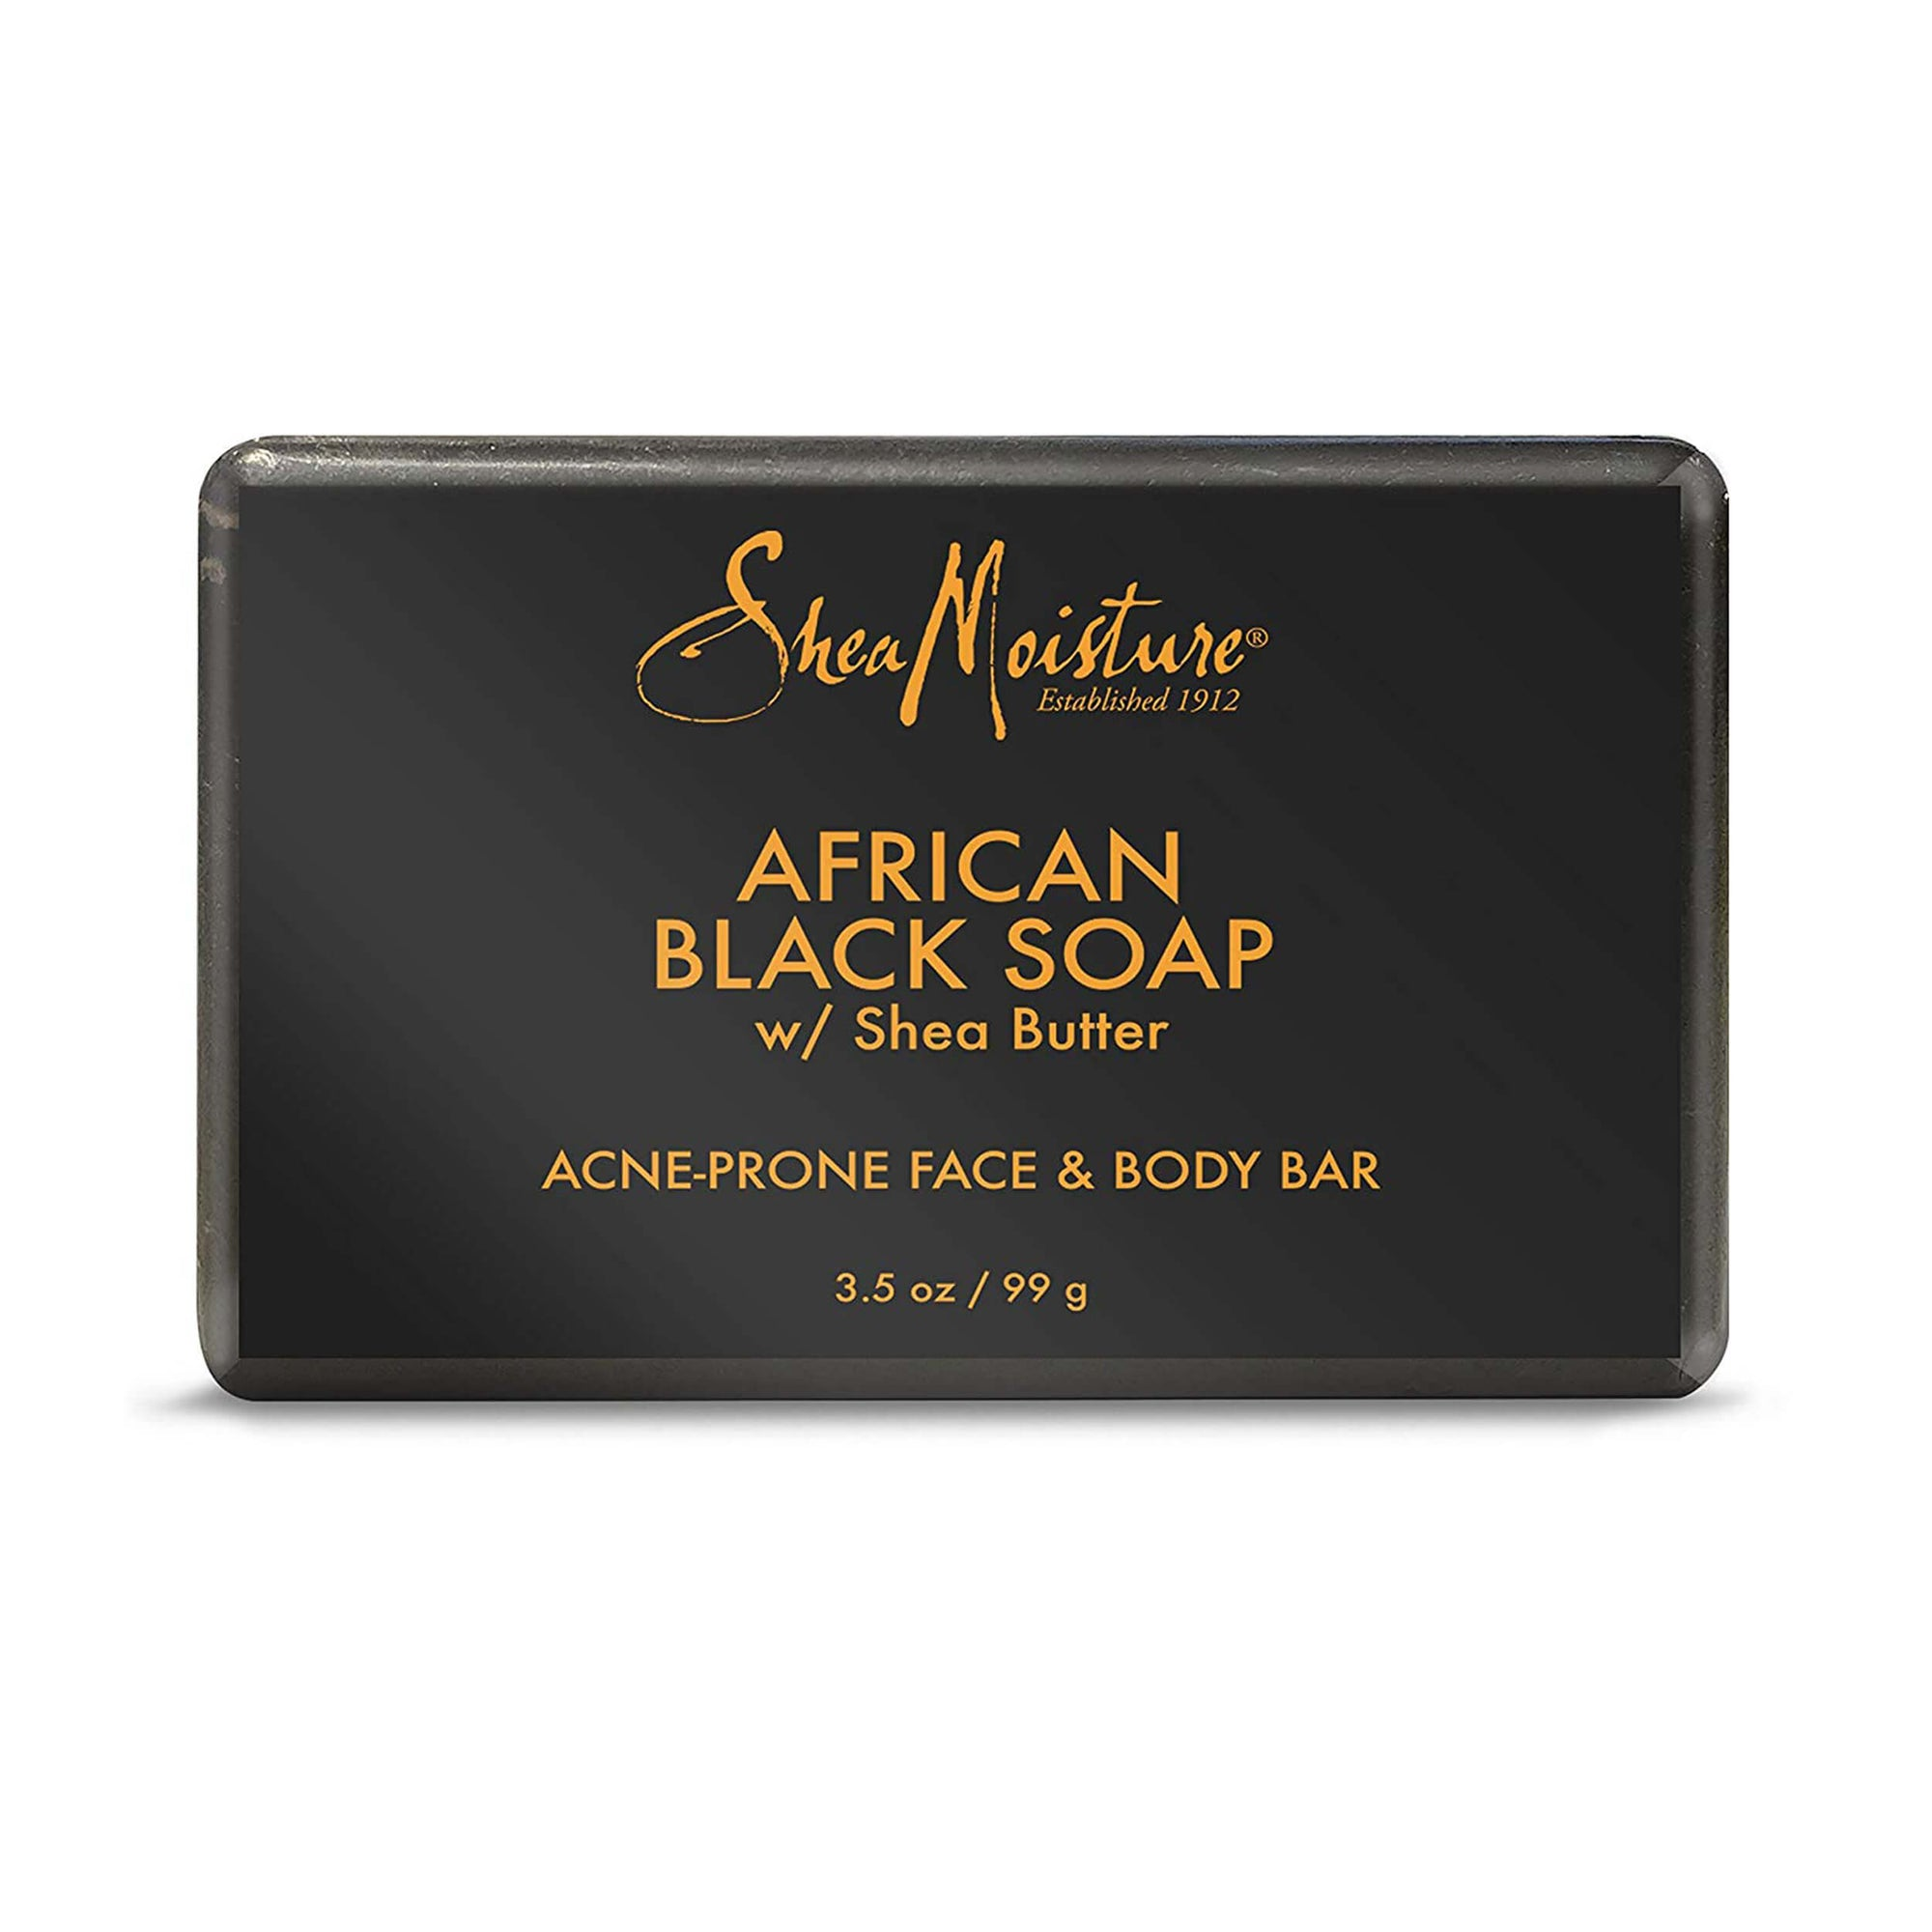 Shea Moisture African Black Soap with Shea Butter 99g